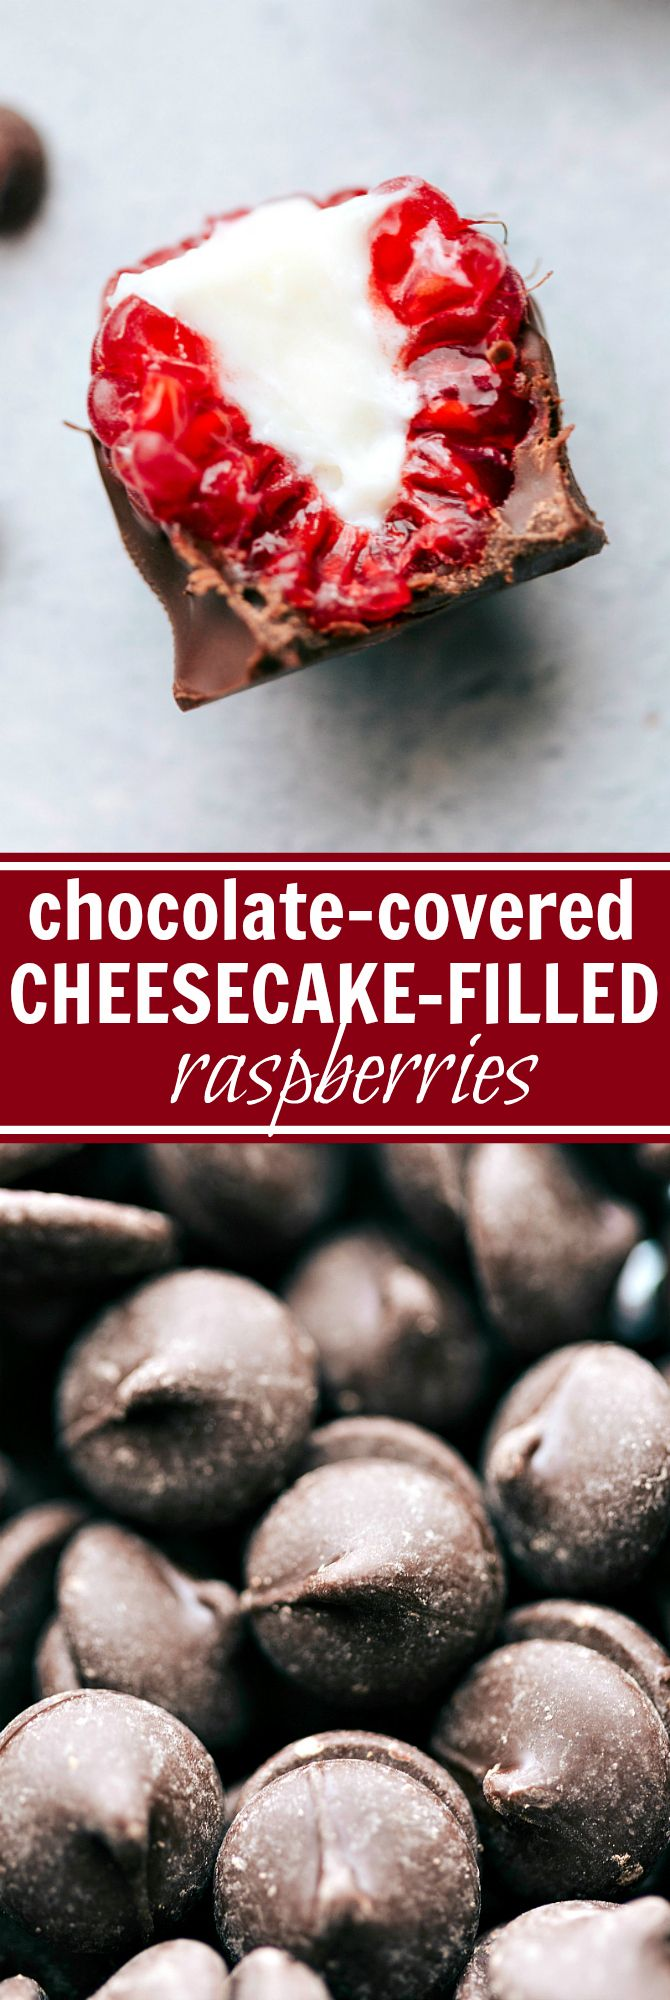 CHEESECAKE FILLED RASPBERRiES! Only FOUR ingredients to make these amazing chocolate-dipped and cheesecake-filled raspberries. via http://chelseasmessyapron.com